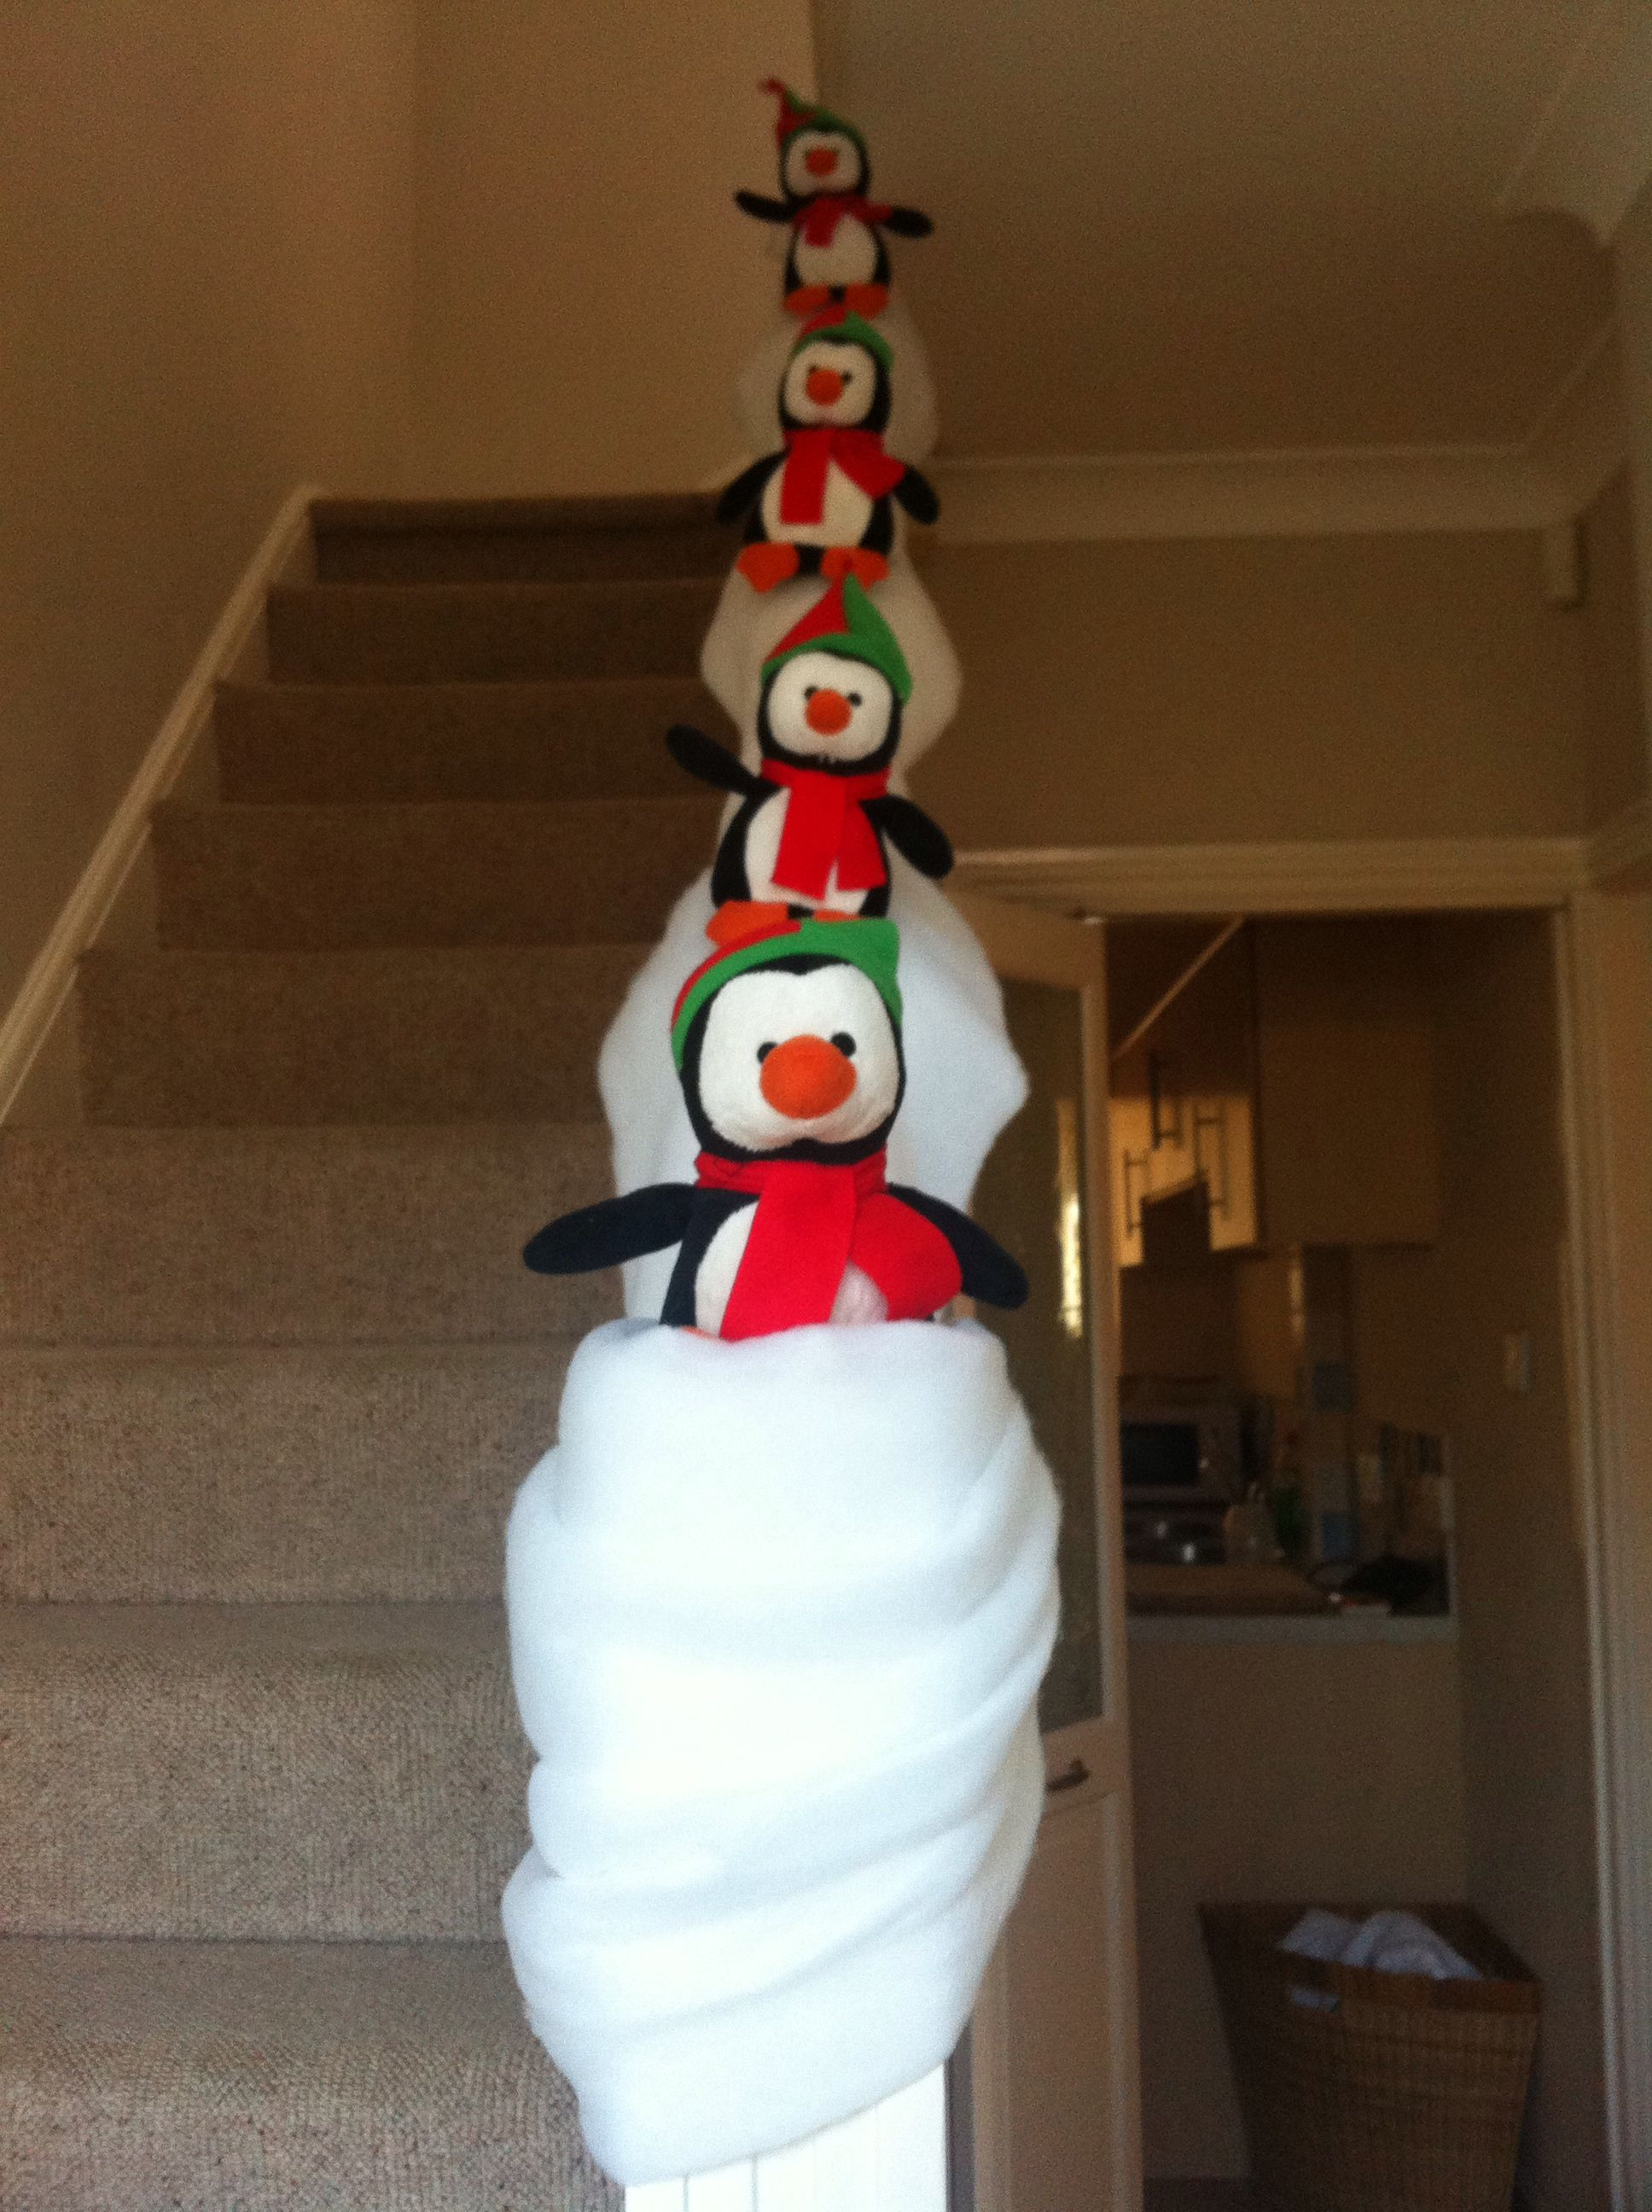 Penguins having a blast / decoration / Christmas / stairs